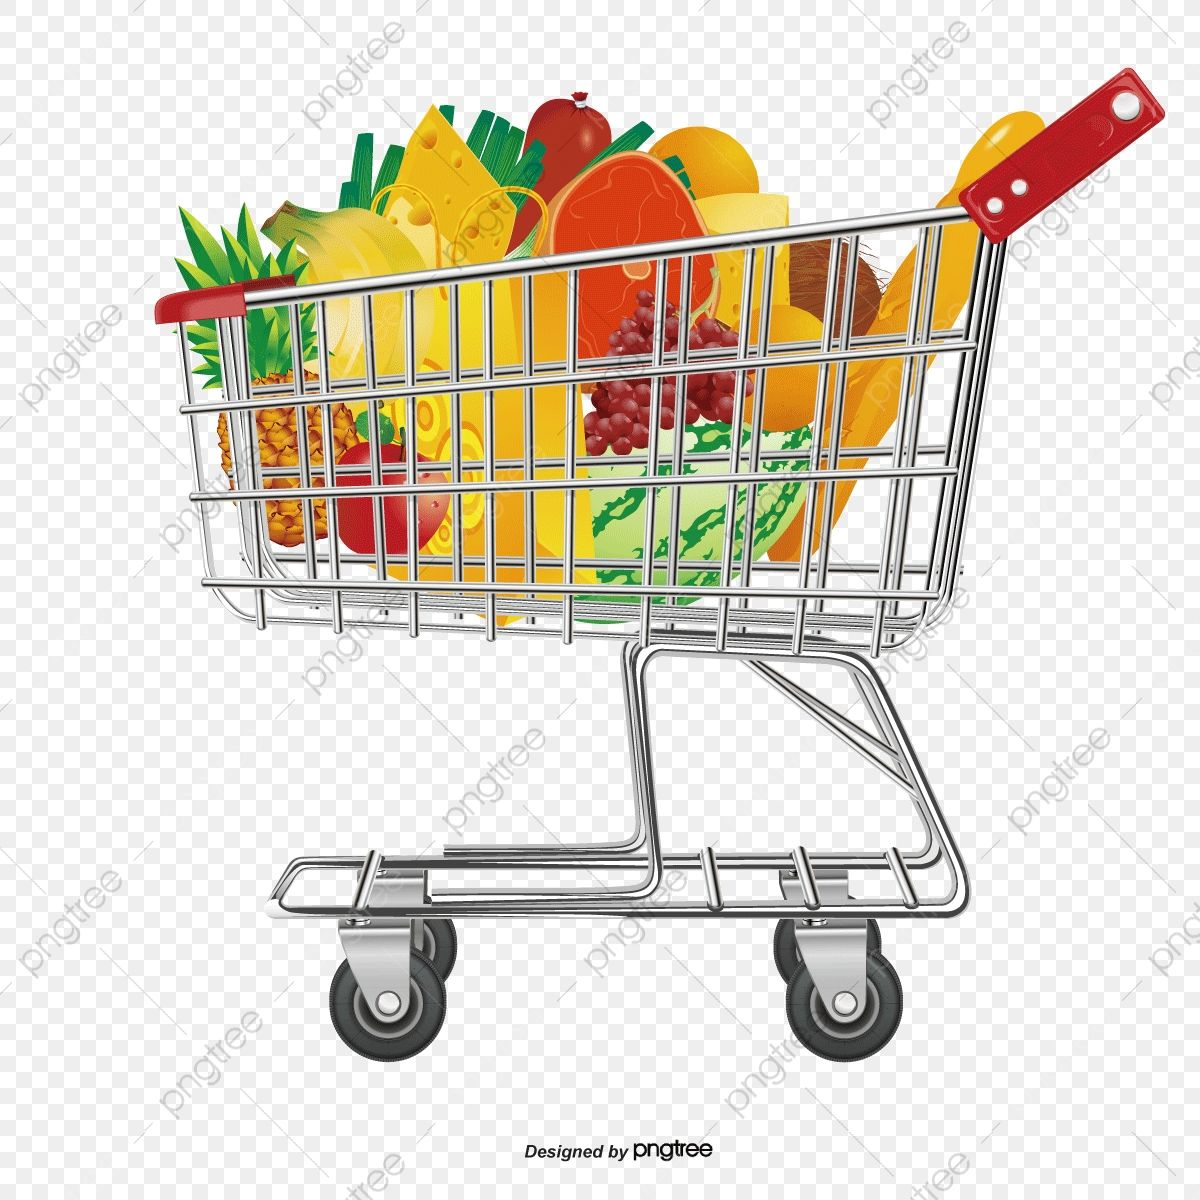 Download This Supermarket Shopping Cart Shopping Vector Trolley Shopping Cart Transparent Png Or Vector File Fo Shopping Cart Supermarket Vector Icon Design